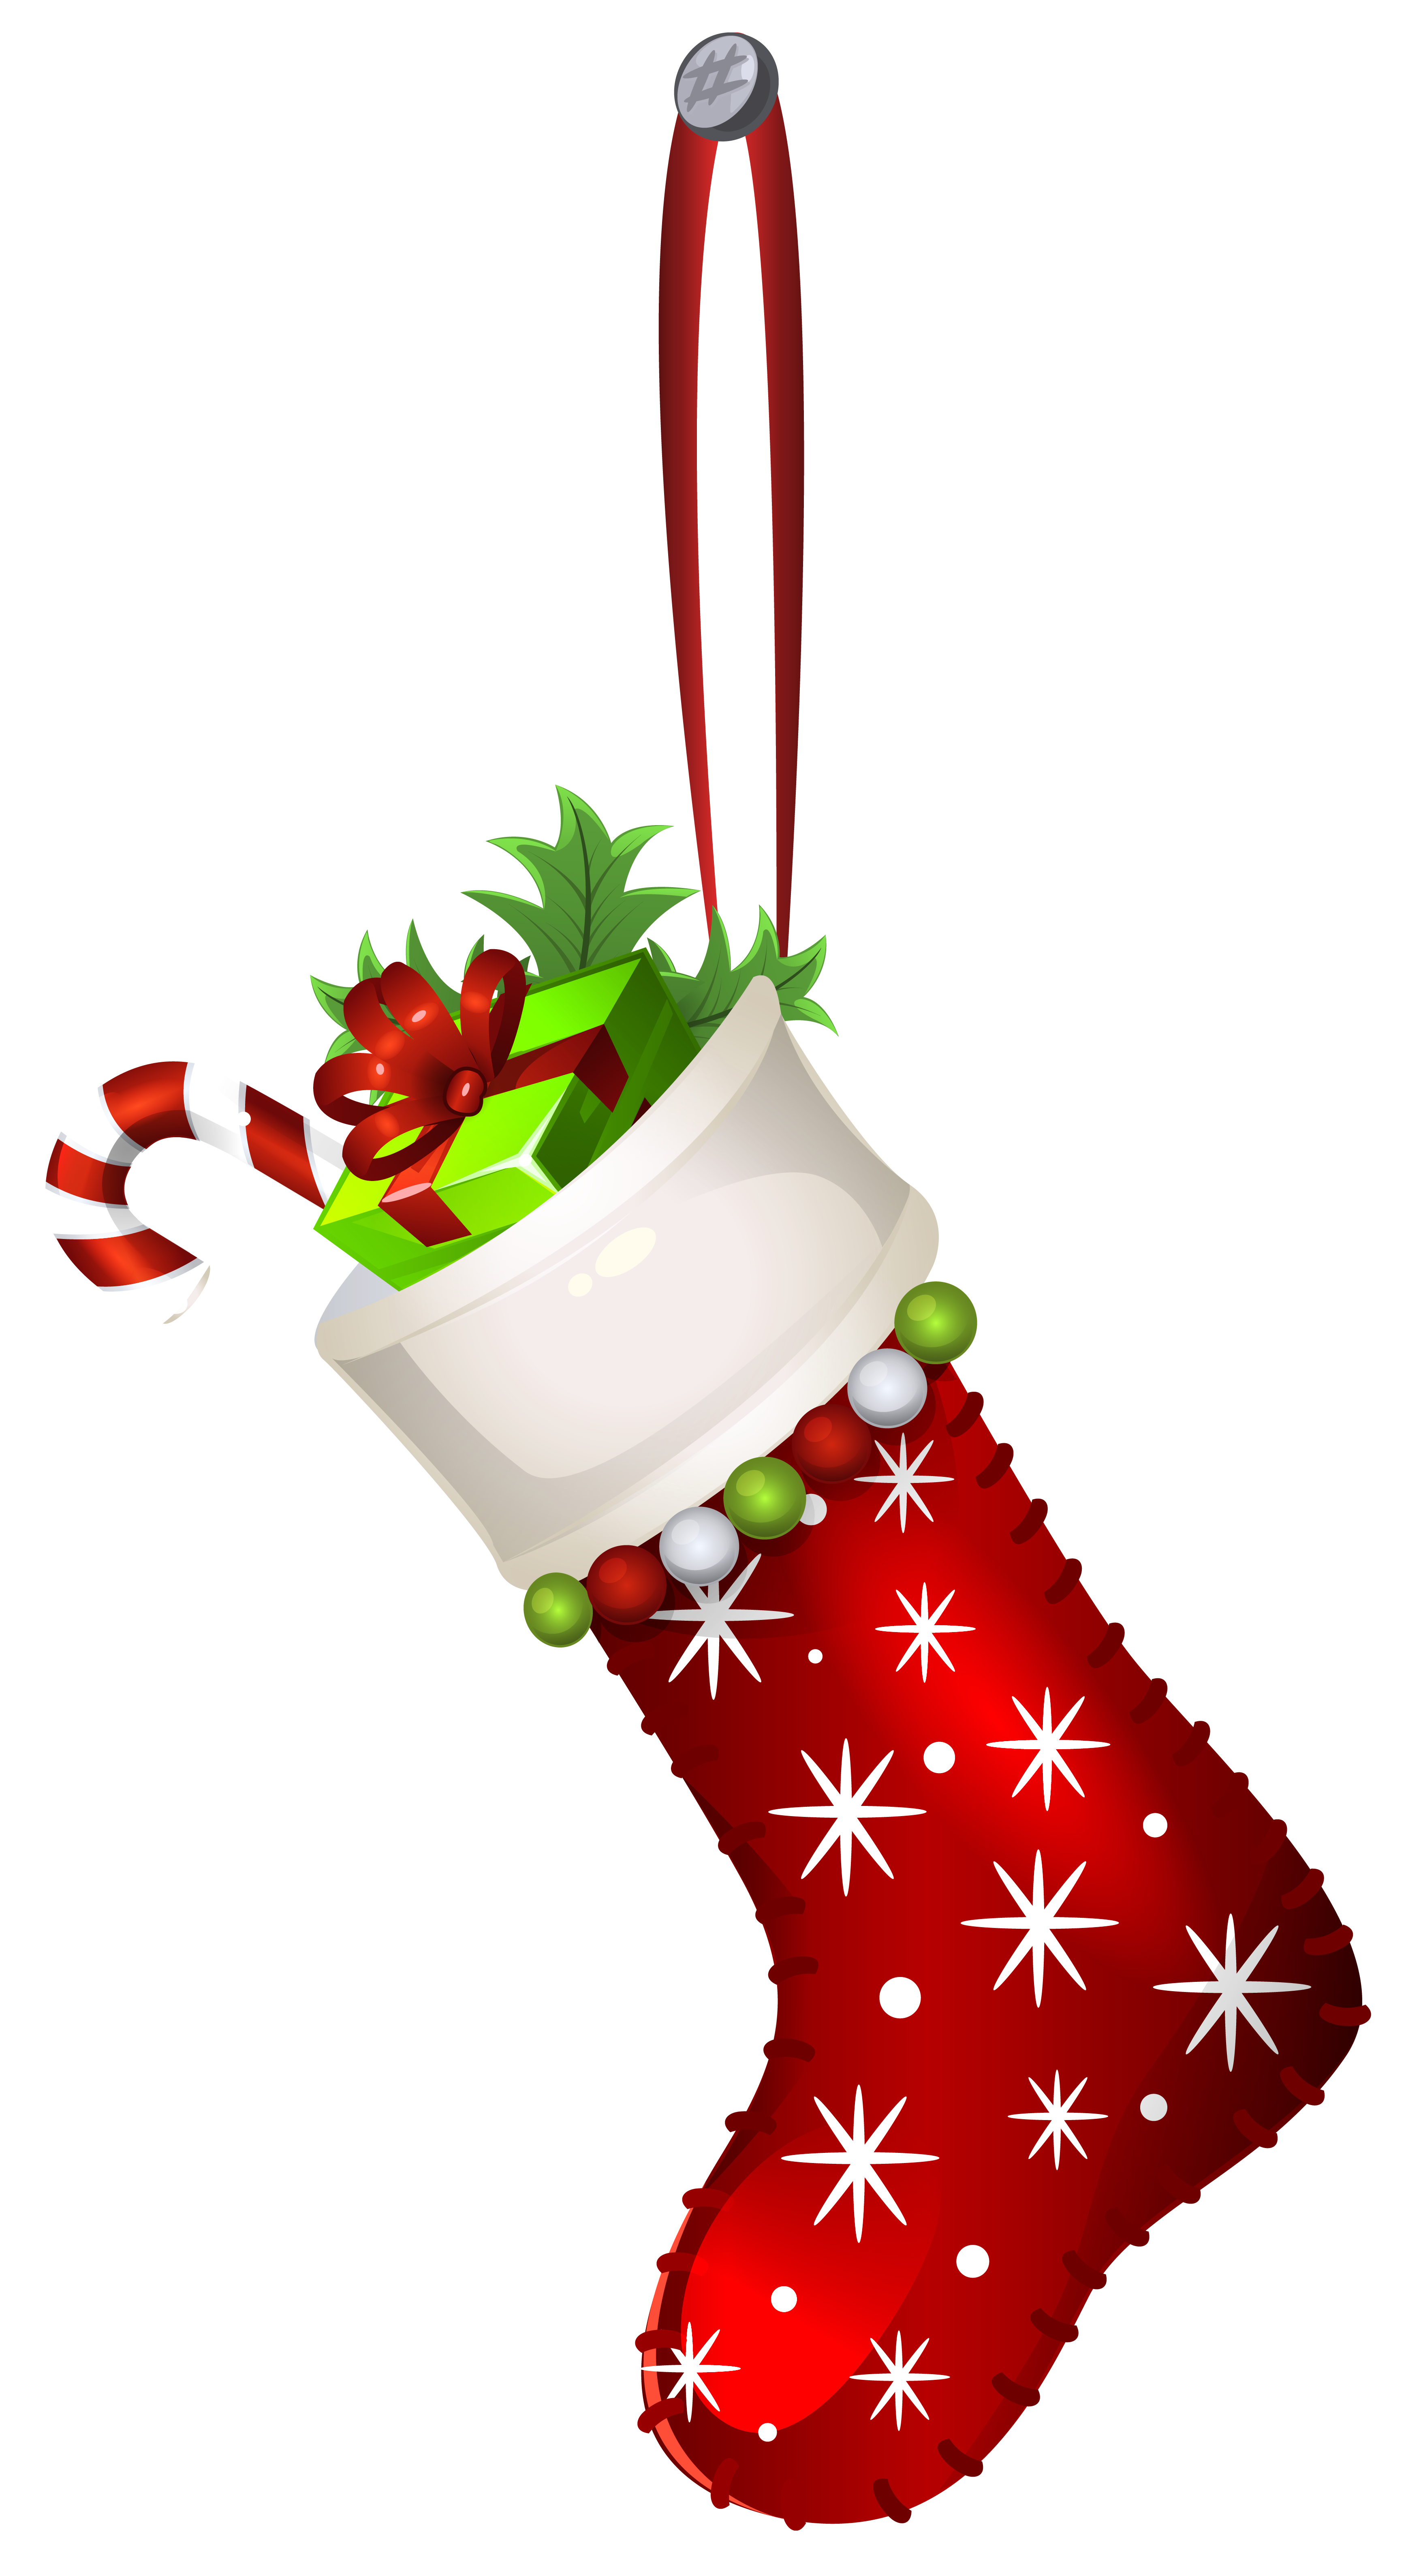 3512x6356 Red Christmas Stocking Transparent PNG Clip Art Imageu200b Gallery